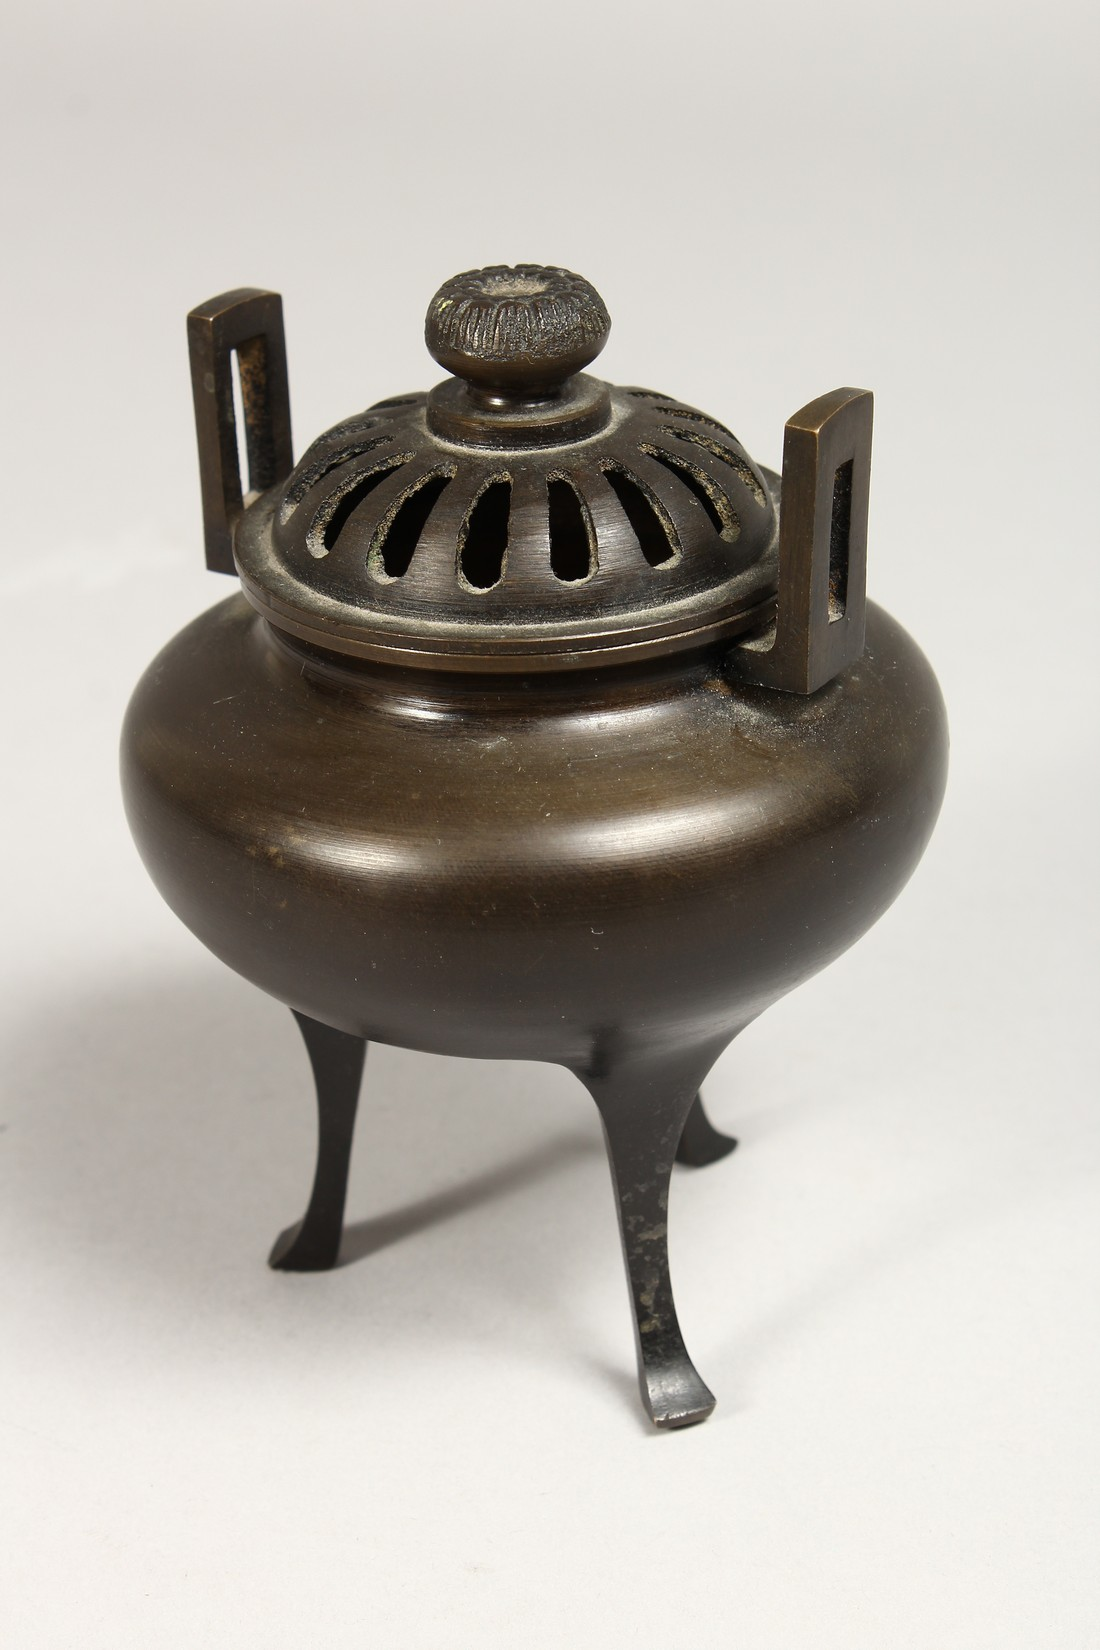 A CHINESE TWO HANDLED BRONZE CENSER AND COVER, 5ins high. - Image 5 of 7